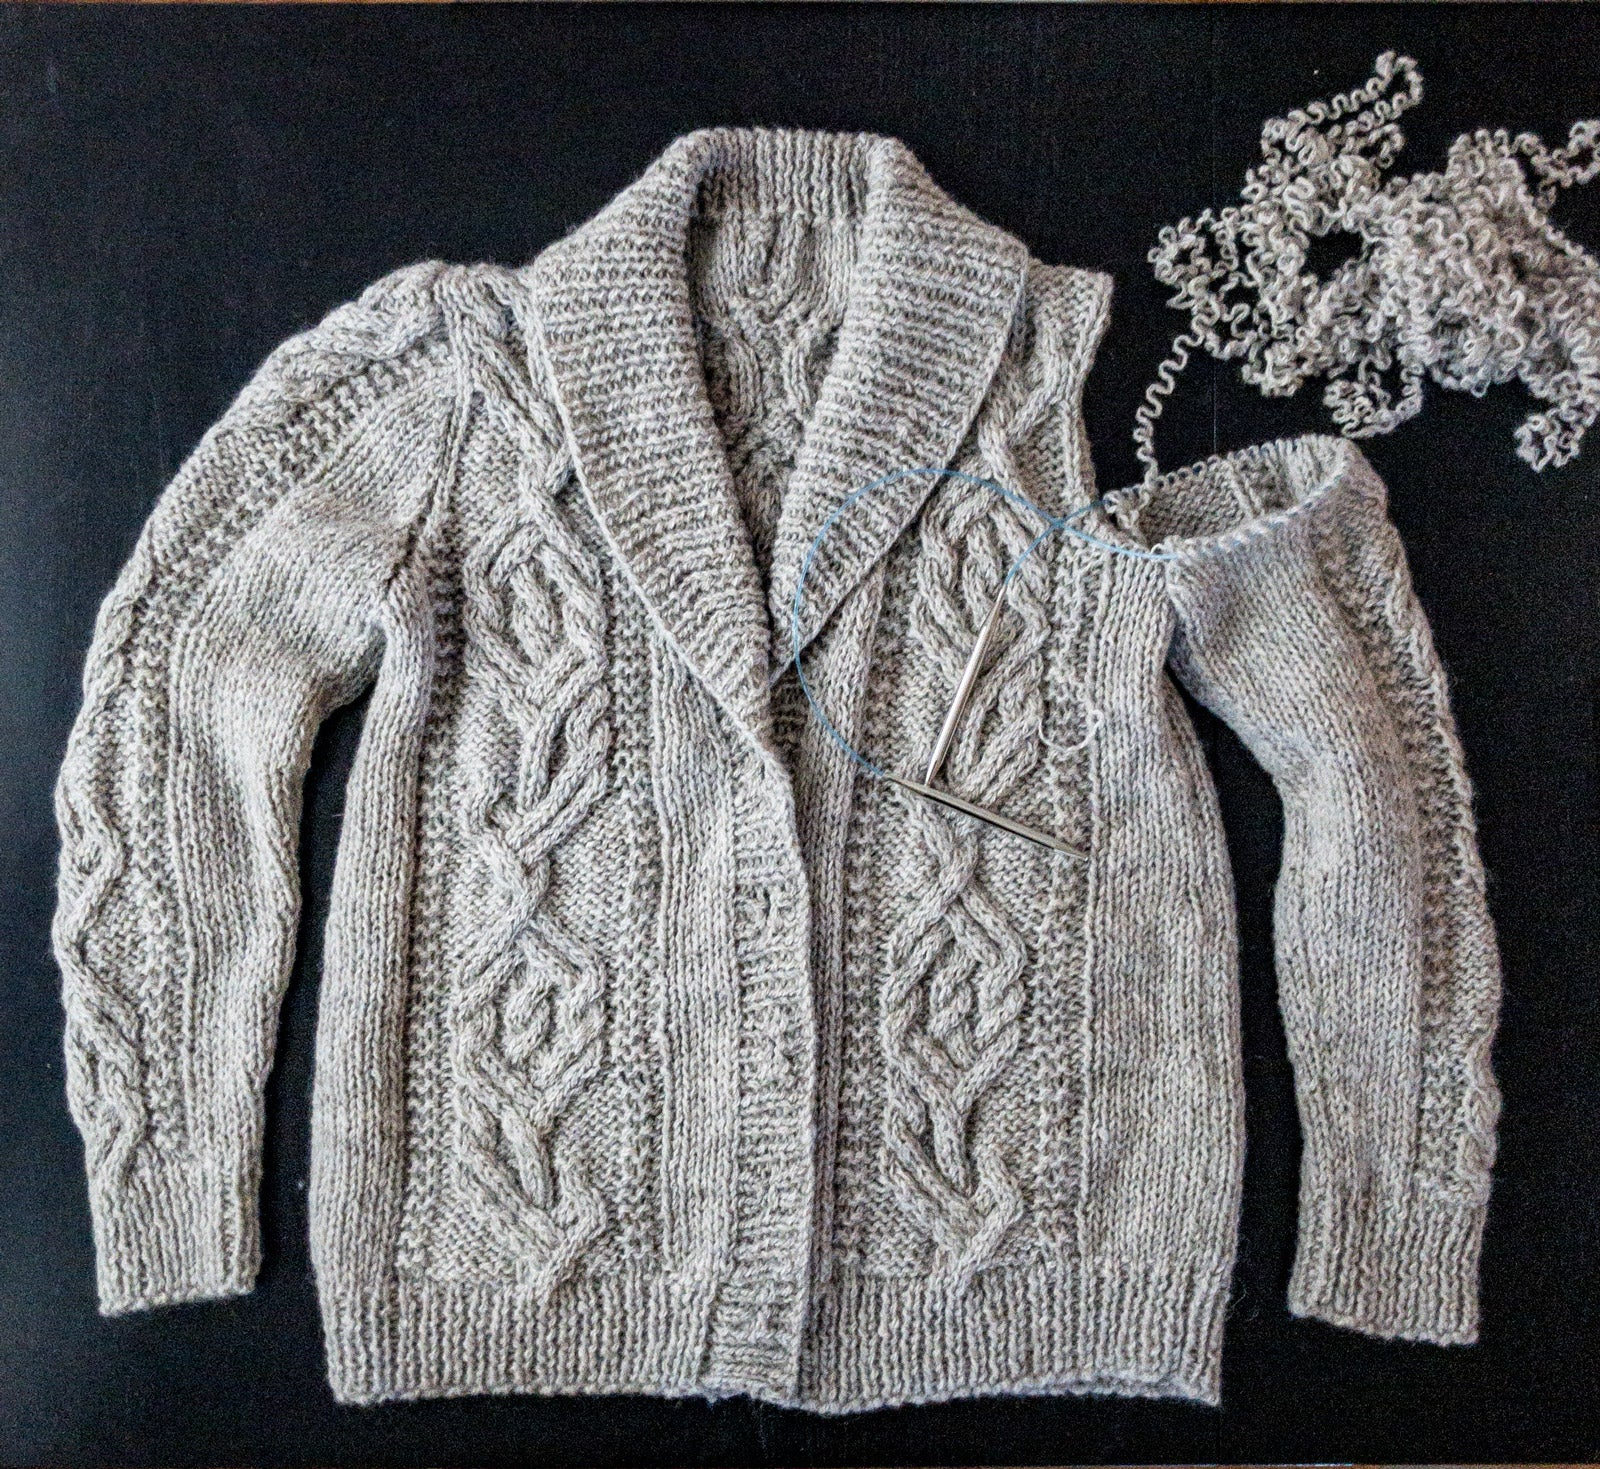 Unraveling the sleeve cap of Jungrass Cabled Cardigan